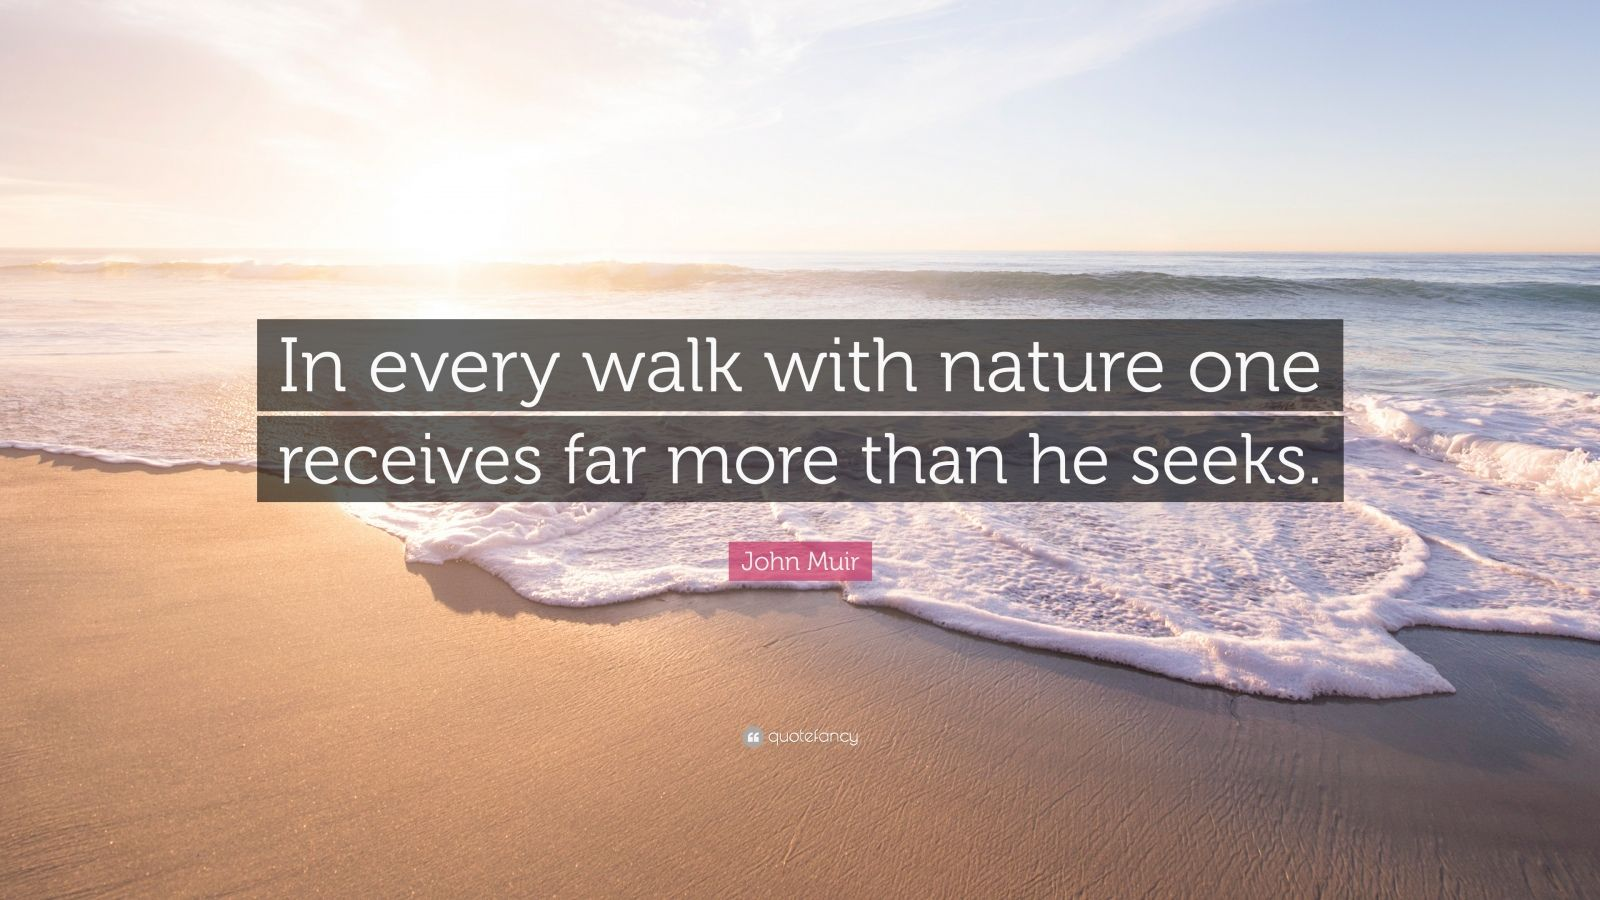 John Muir Quotes Wallpaper John Muir Quote In Every Walk With Nature One Receives